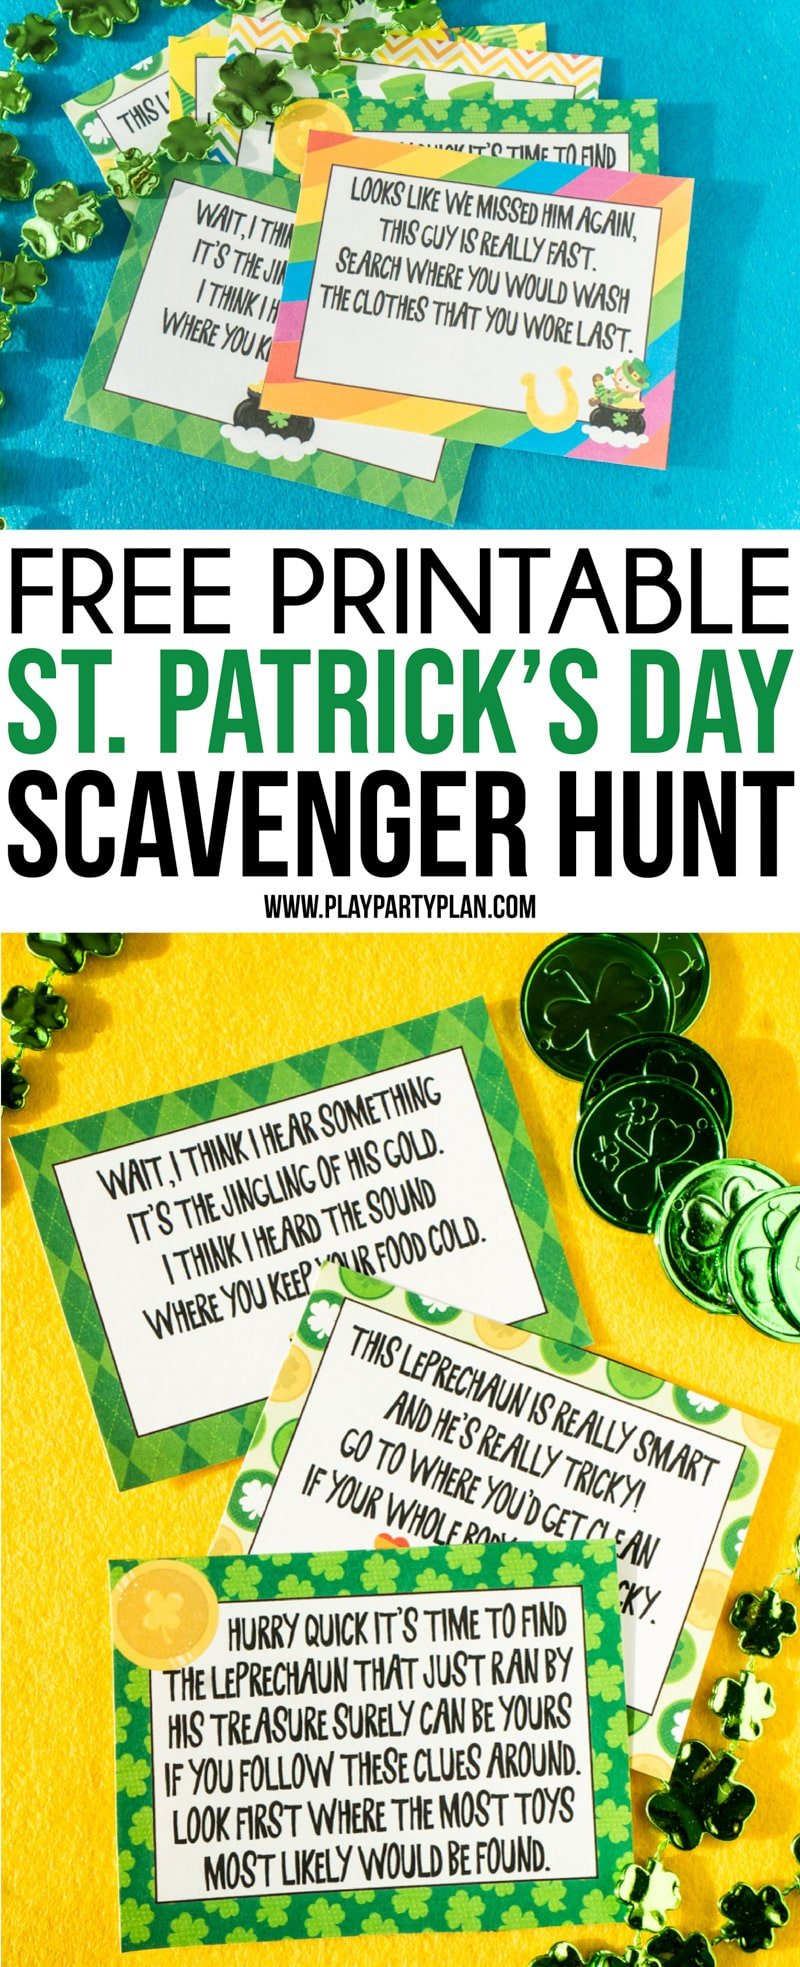 This St. Patrick's Day scavenger hunt is one of the best party activities for kids! Simply print out the printable clues, hide around the house, and leave with favors at the end for magical fun!